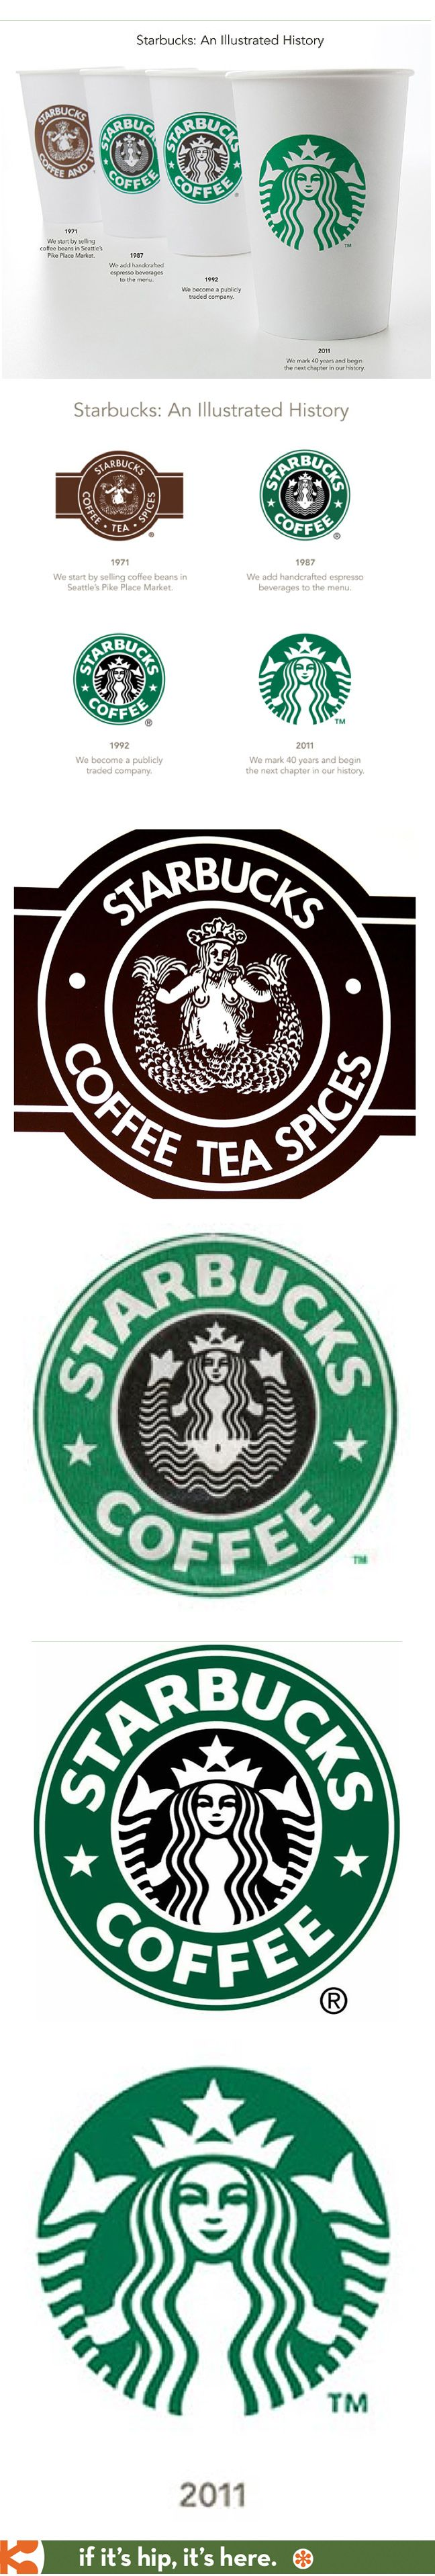 Evolution of the Starbucks Logo Small changes to update a logo as the business grows and changes December 13, 2013